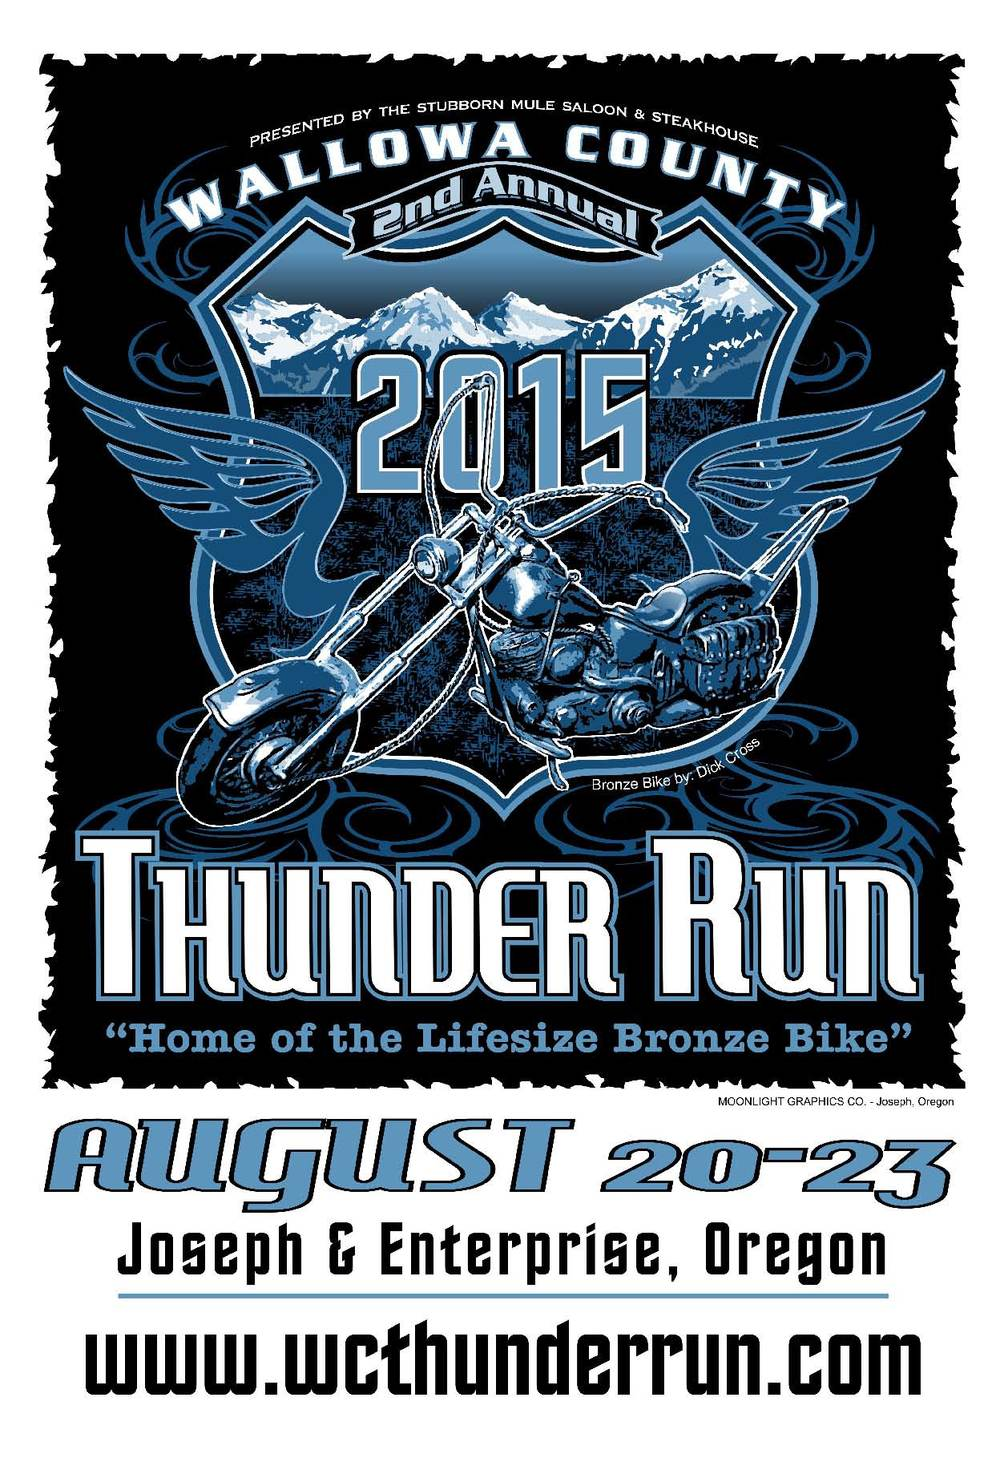 Thunder Run T-Shirt will be available for purchase at Registration and during the Thunder Run.